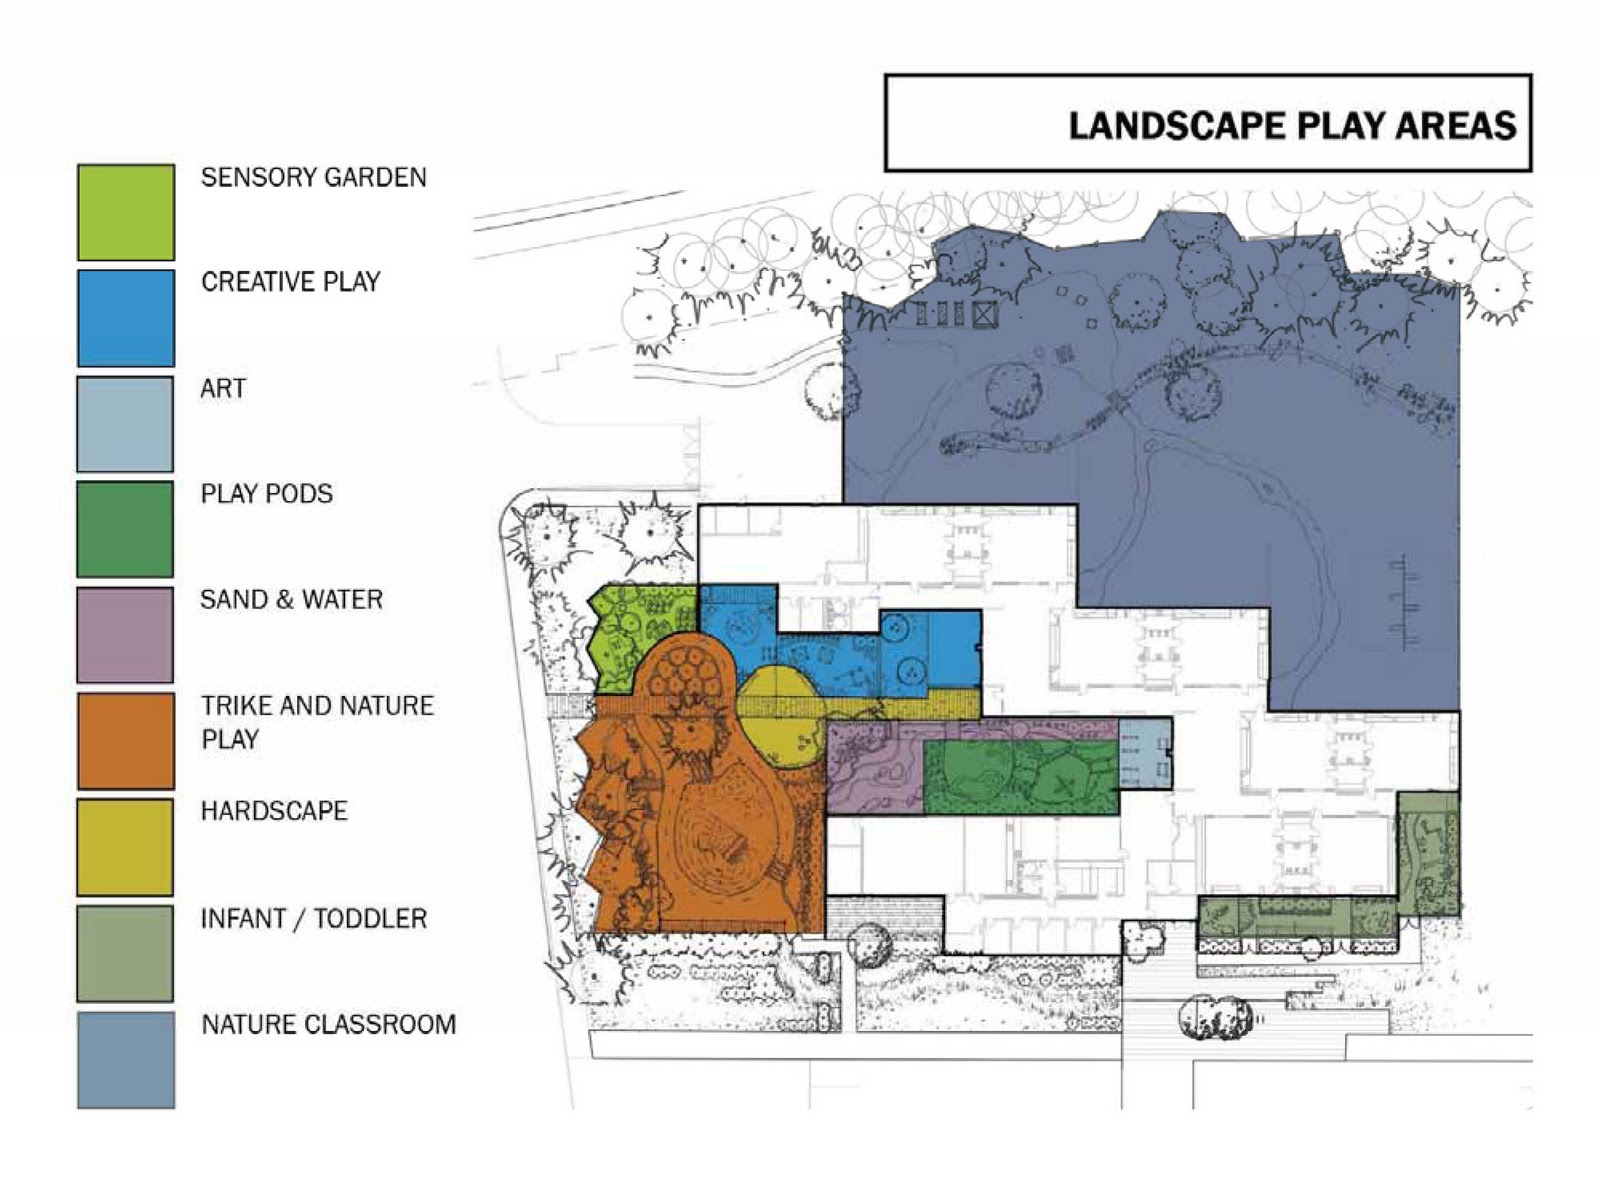 arboretum archives learning landscapes professional playscape